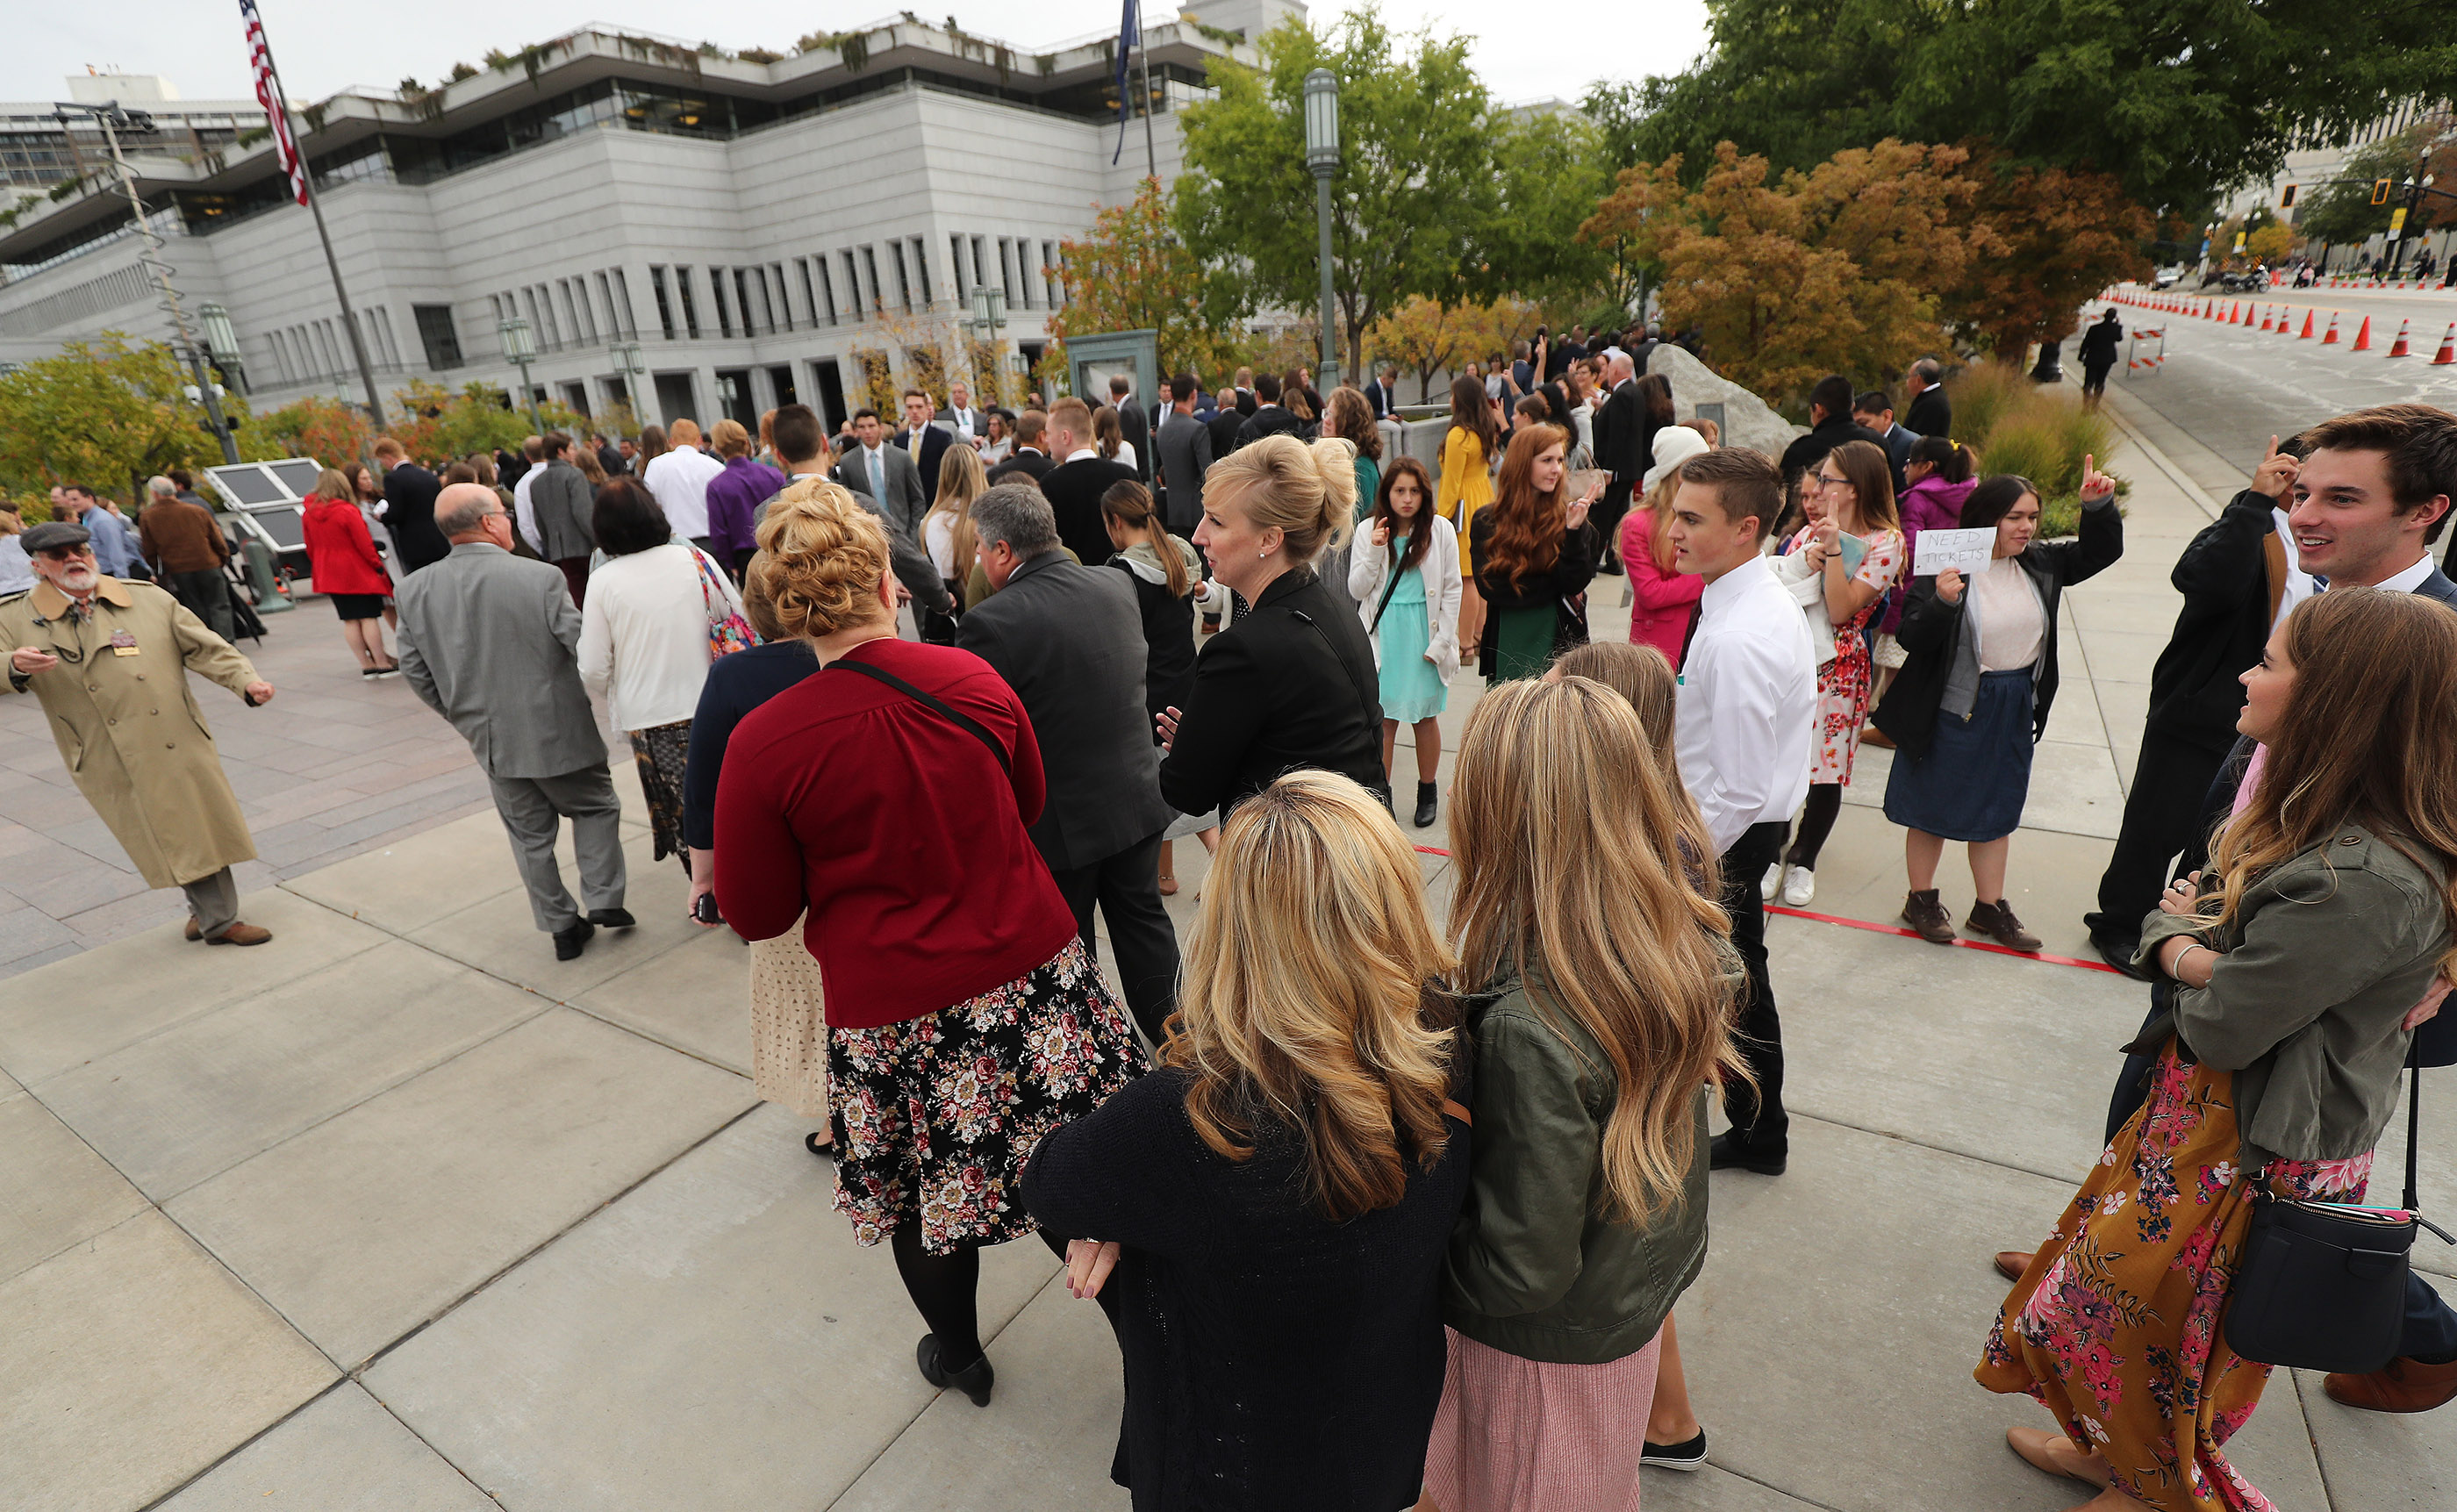 Attendees walk to the Conference Center for the Saturday morning session of the 188th Semiannual General Conference of The Church of Jesus Christ of Latter-day Saints in Salt Lake City on Saturday, Oct. 6, 2018.